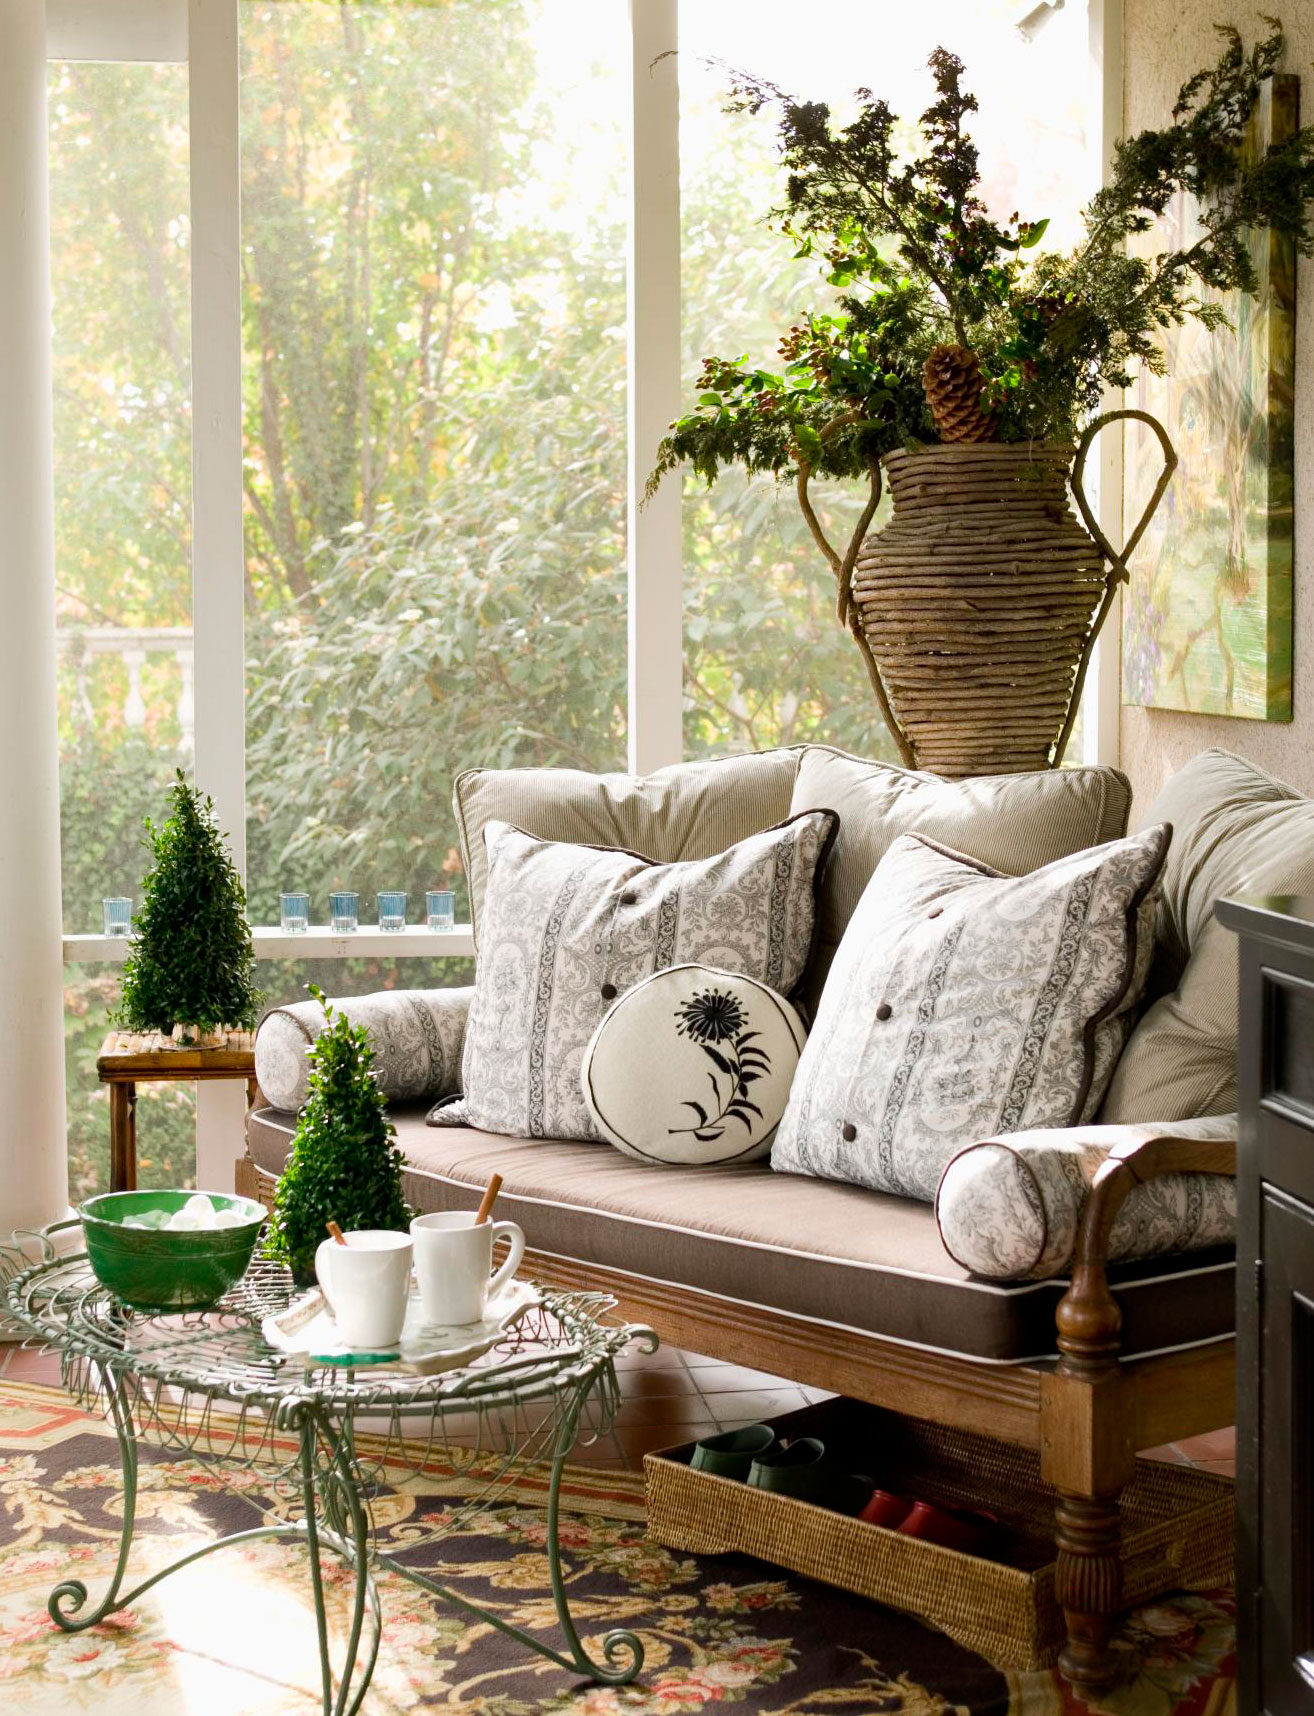 Give warmth to a porch